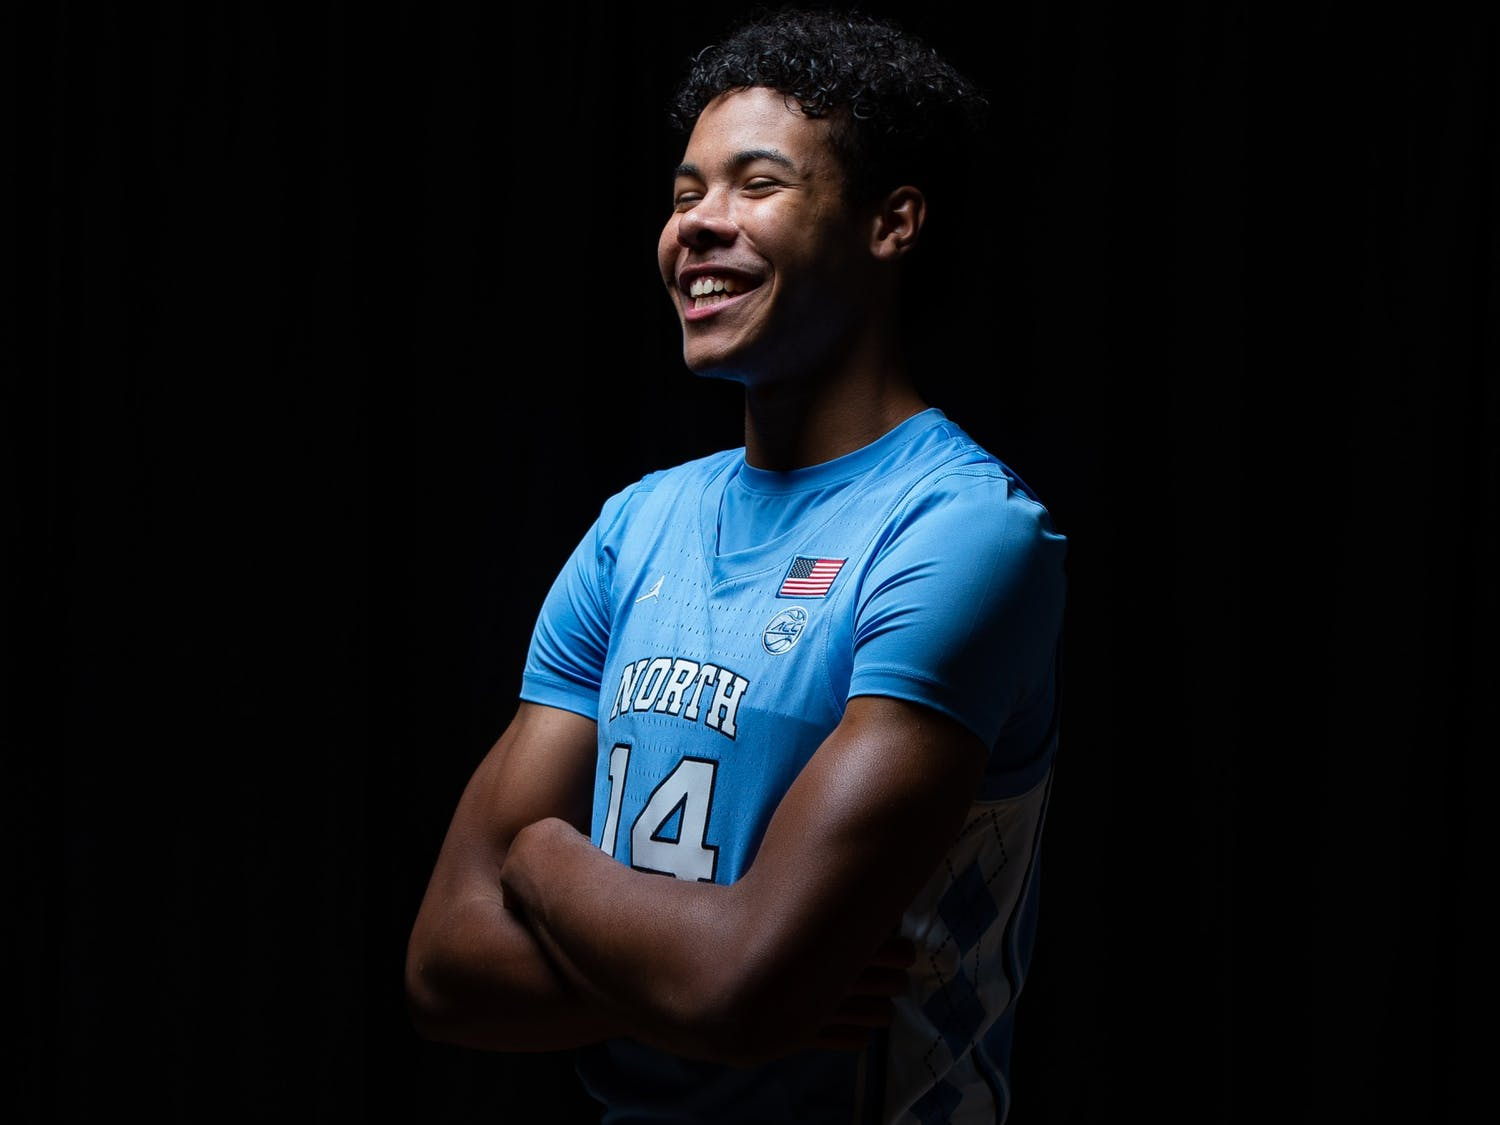 UNC first year guard Puff Johnson poses for a portrait in the Dean Smith Center on Wednesday, October 7, 2020. Photo courtesy of Morgan Pirozzi for UNC Athletic Communications.